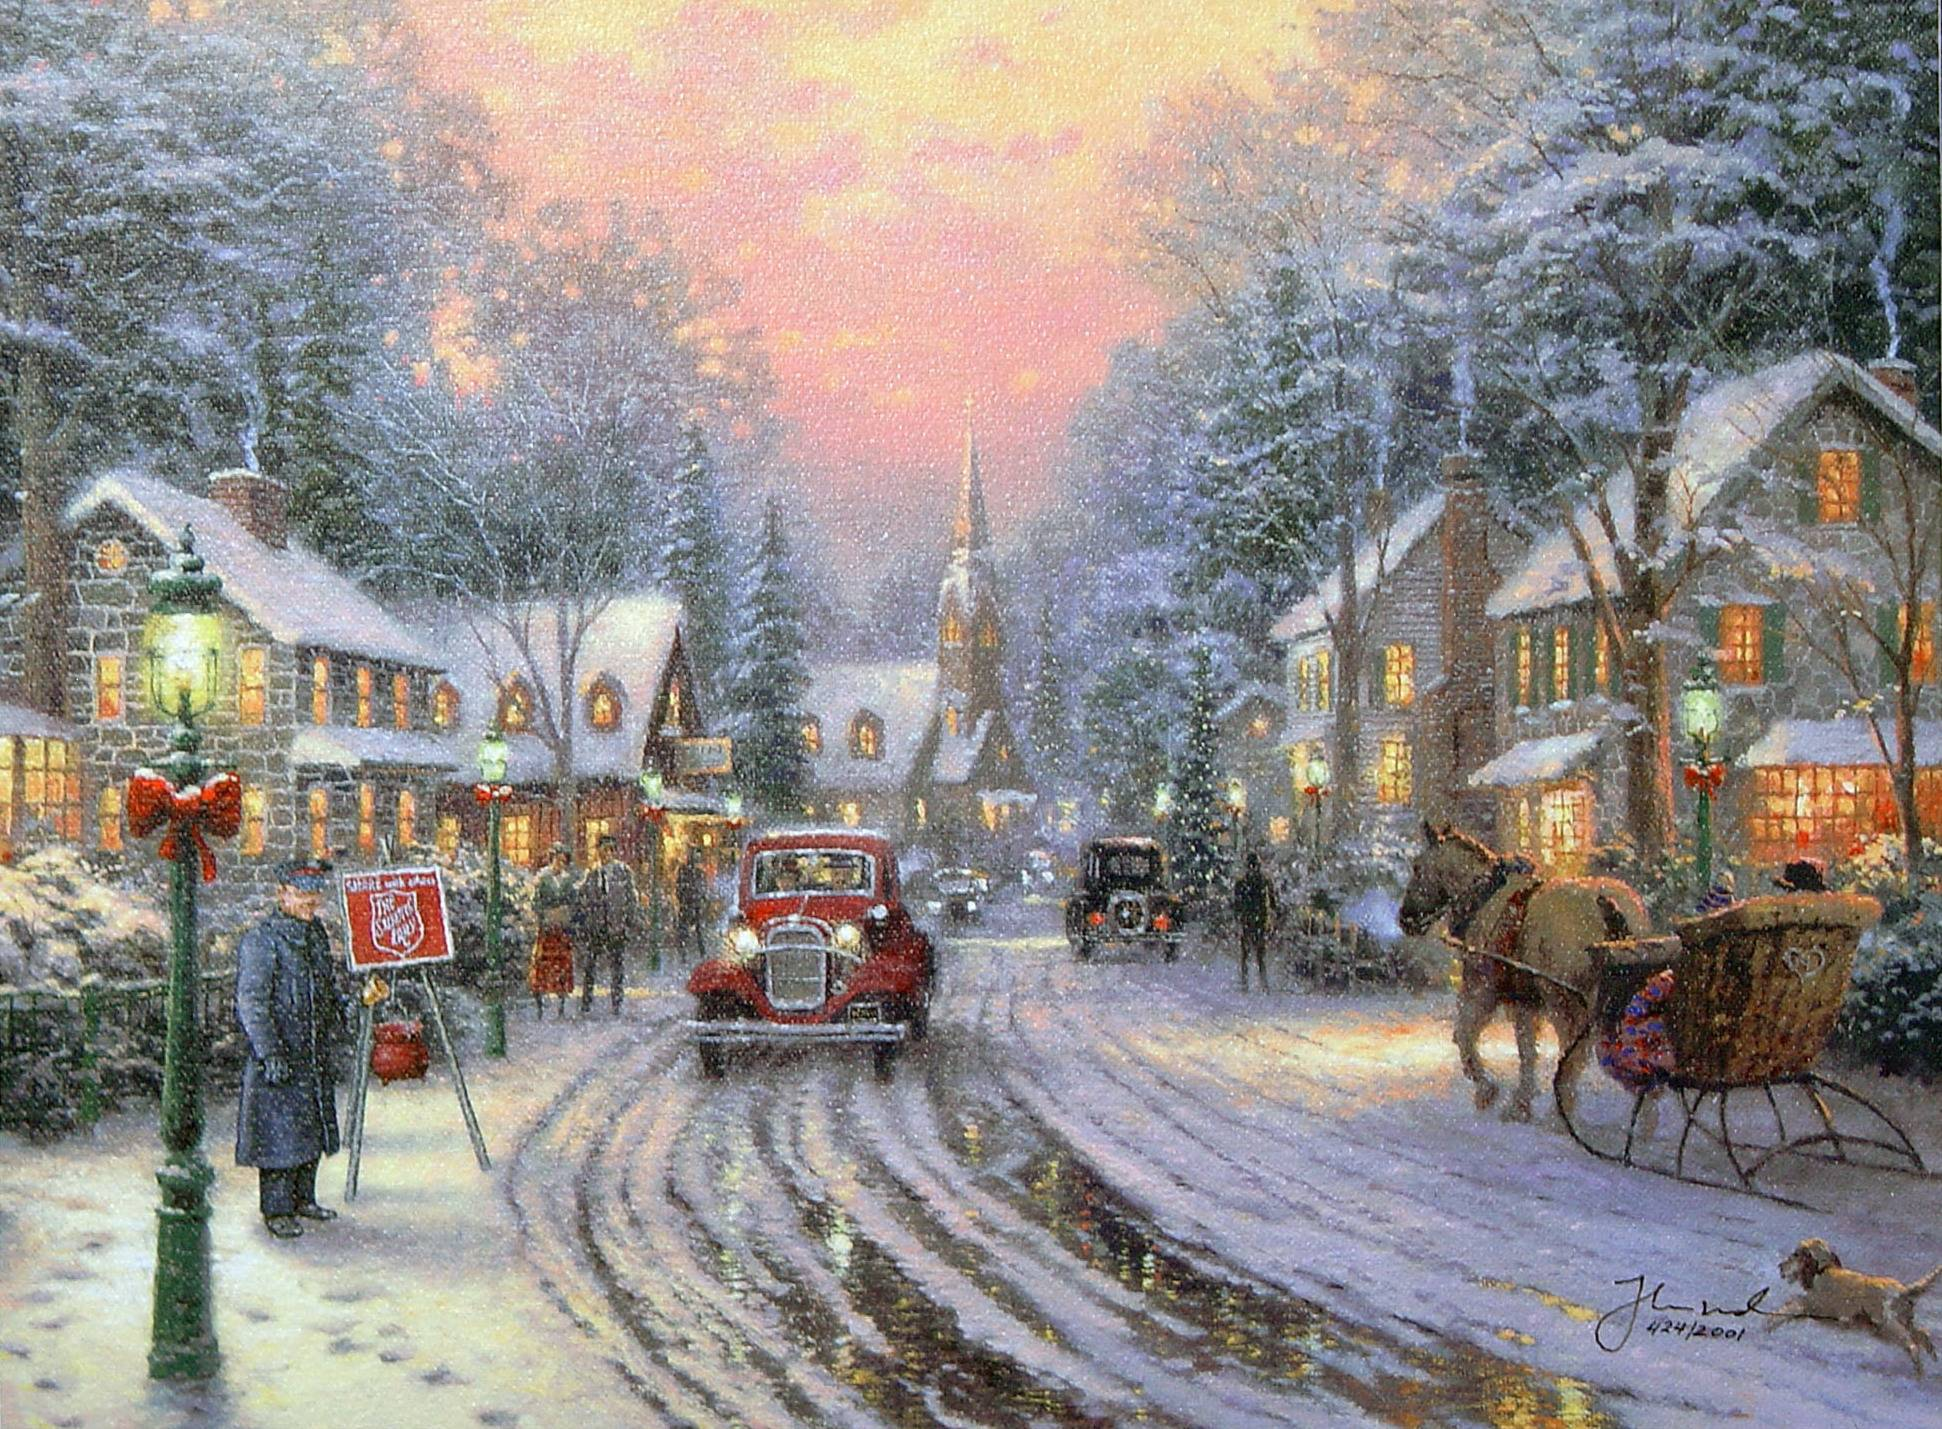 thomas kinkade wallpaper 1920x1080 - photo #39